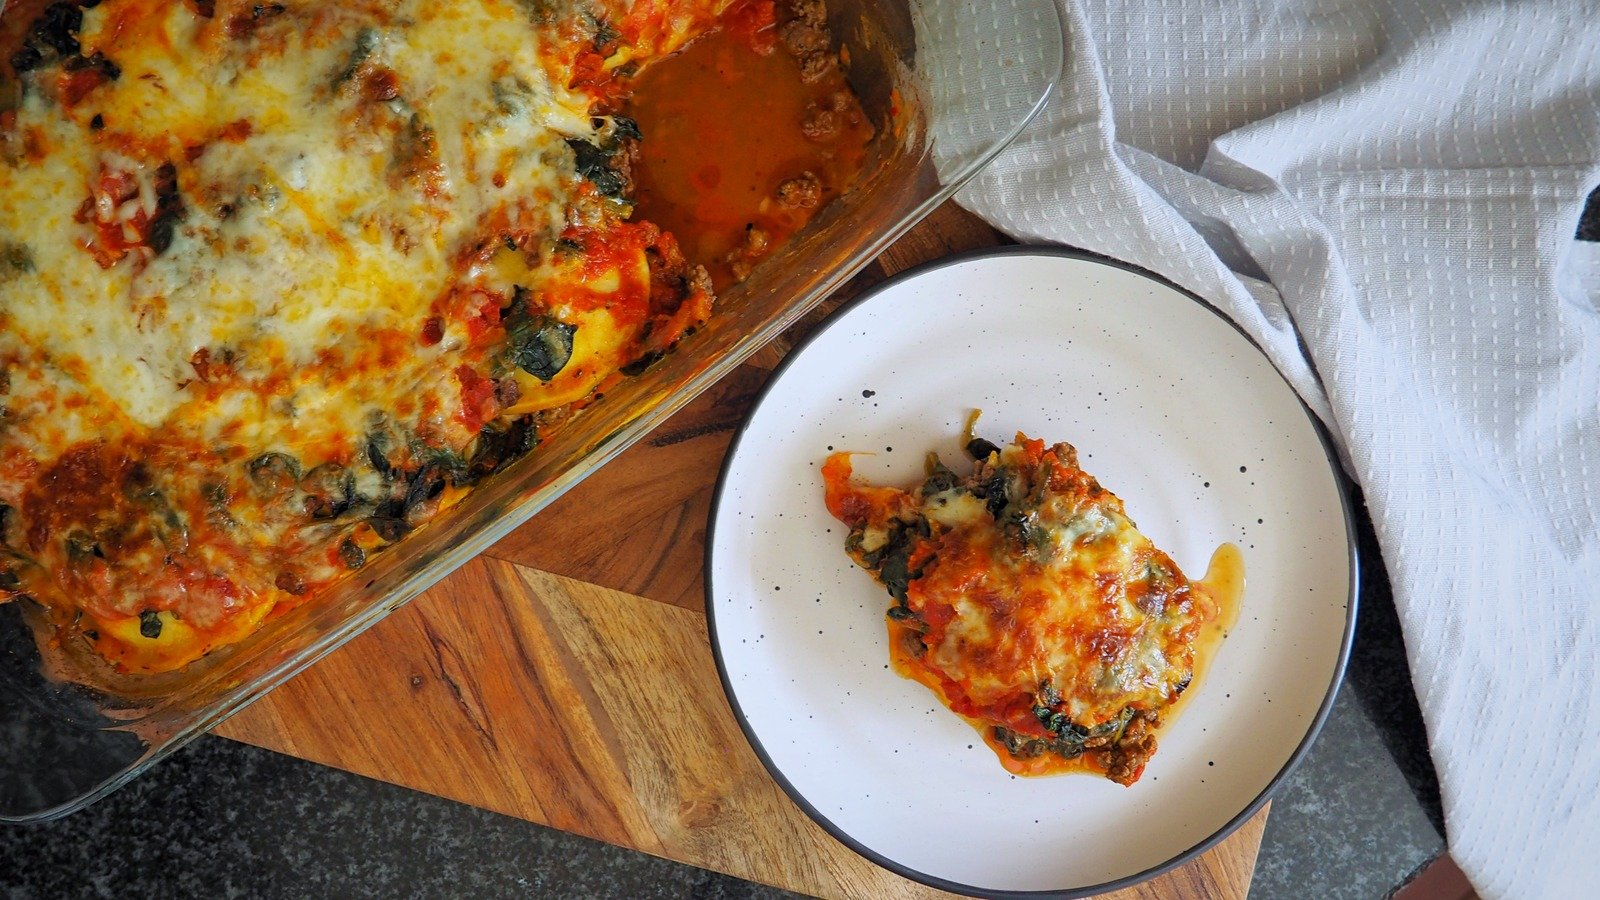 5-Ingredient Lasagna That's Insanely Easy To Make